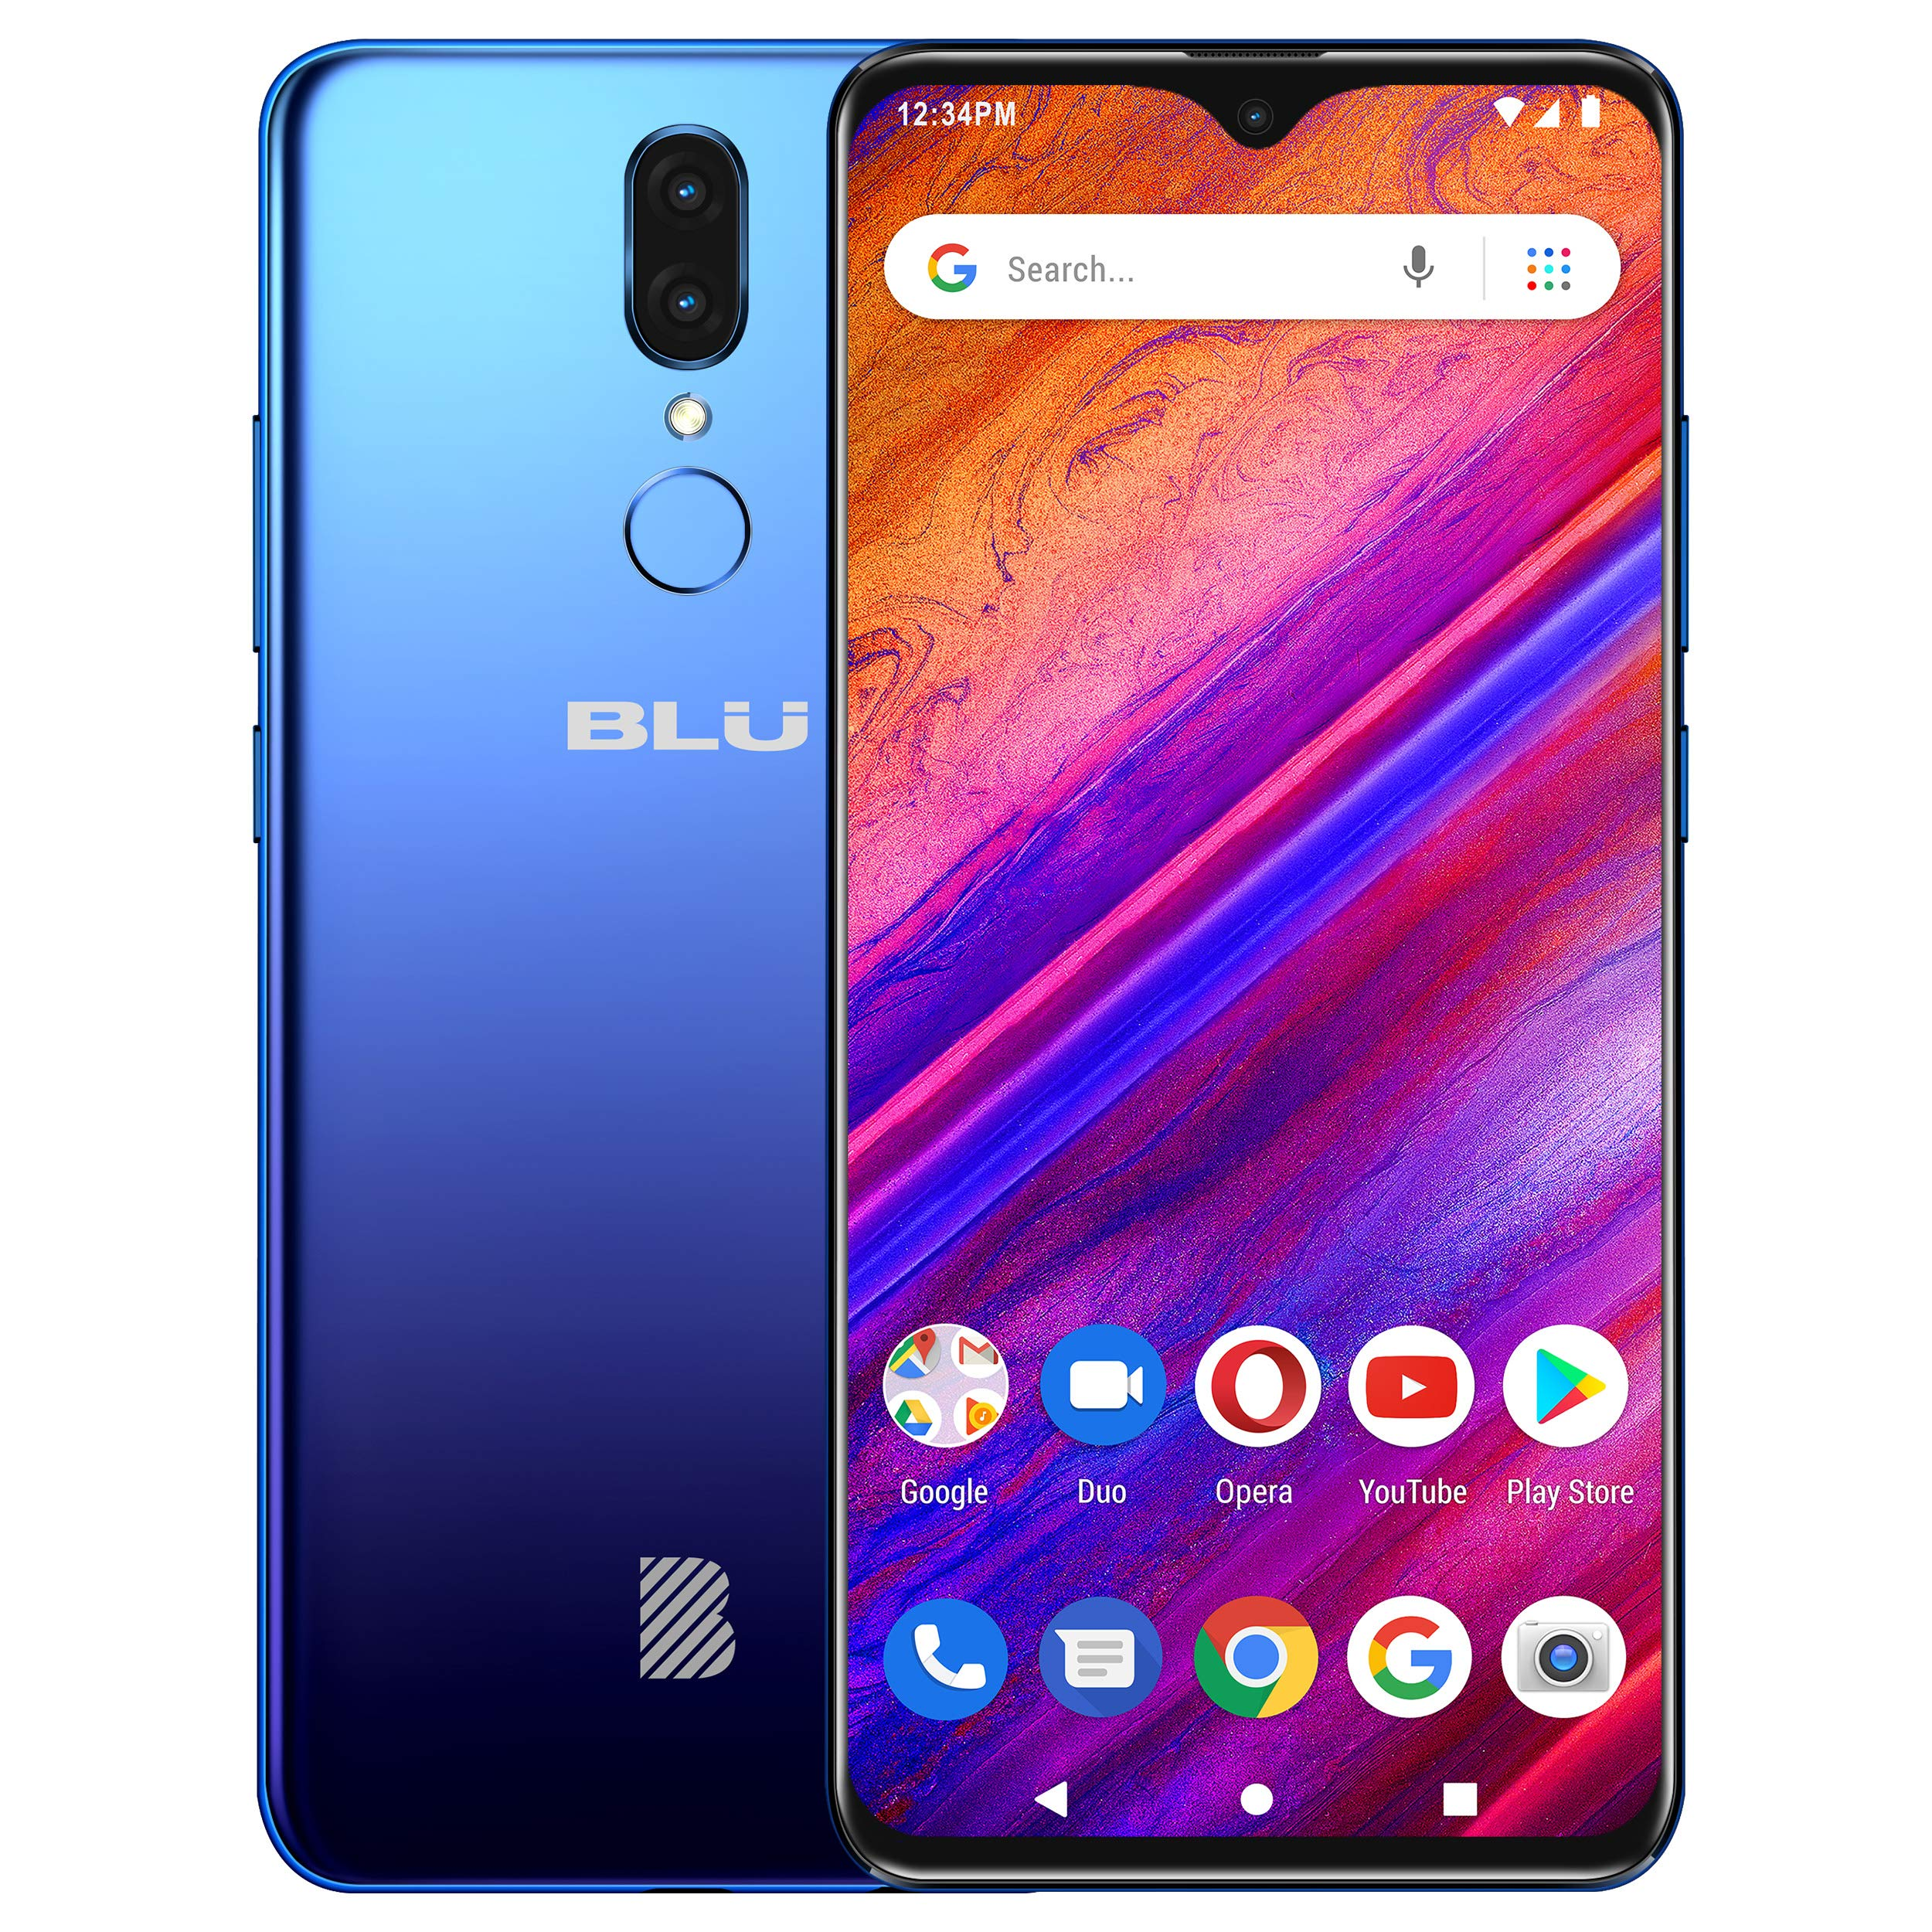 blu-g9-63-hd-infinity-display-smartphone-64gb4gb-ram-blue